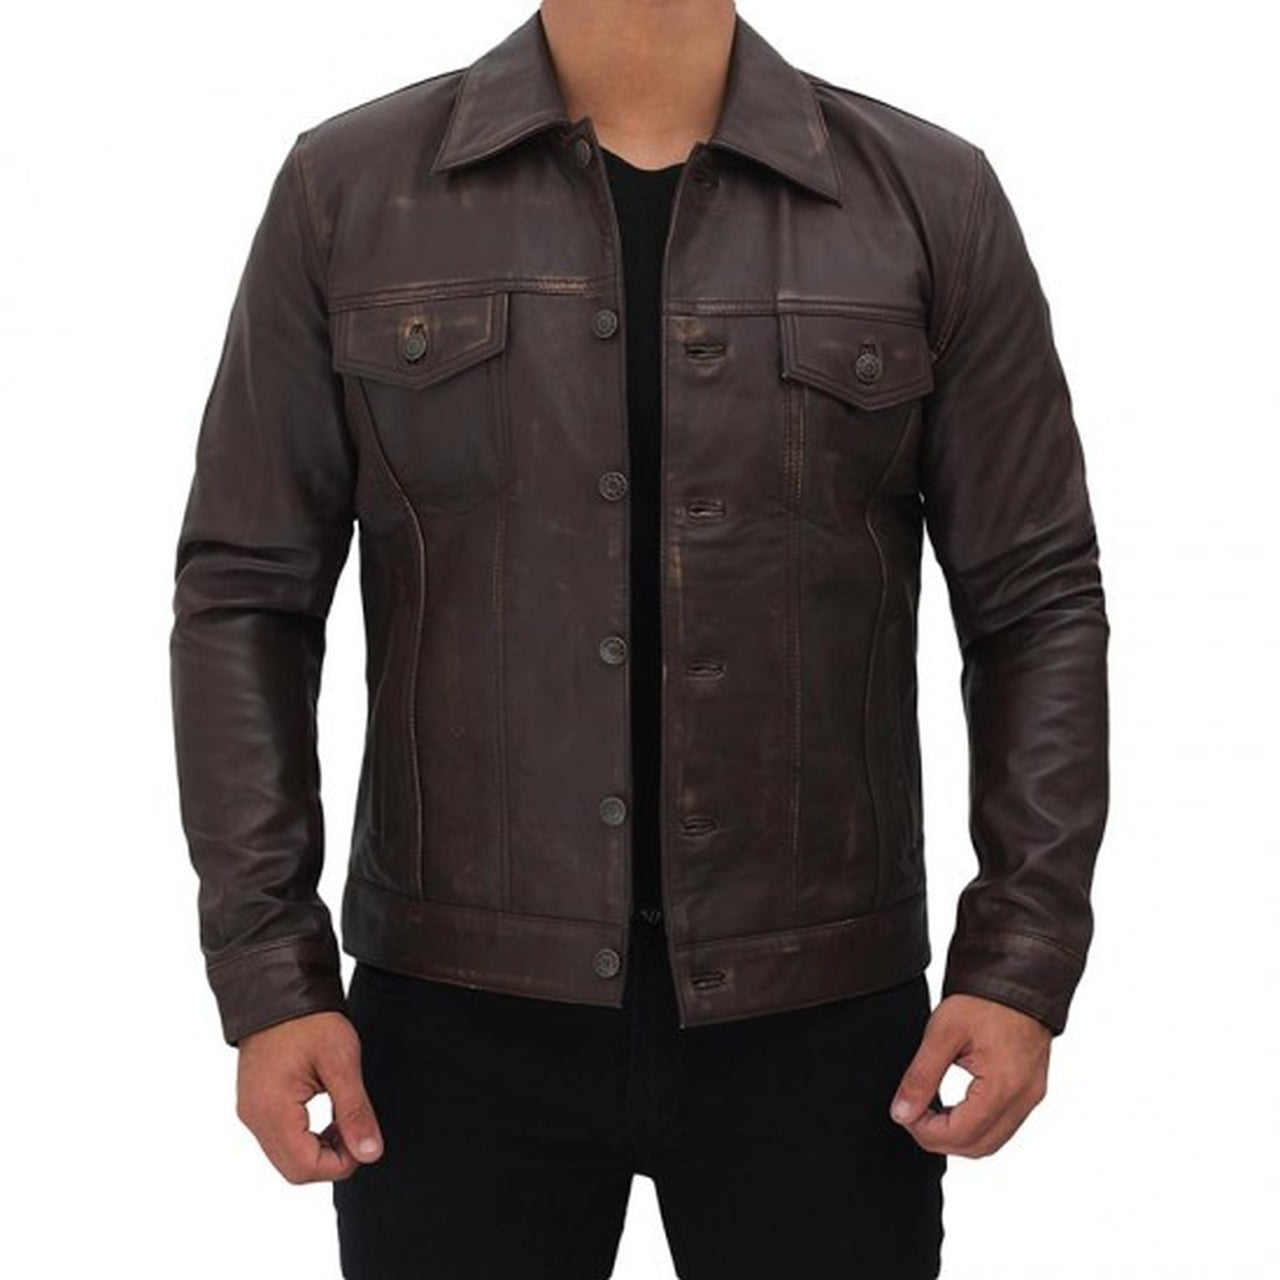 Dark Brown Leather Trucker Jacket Men - Leather Jacket